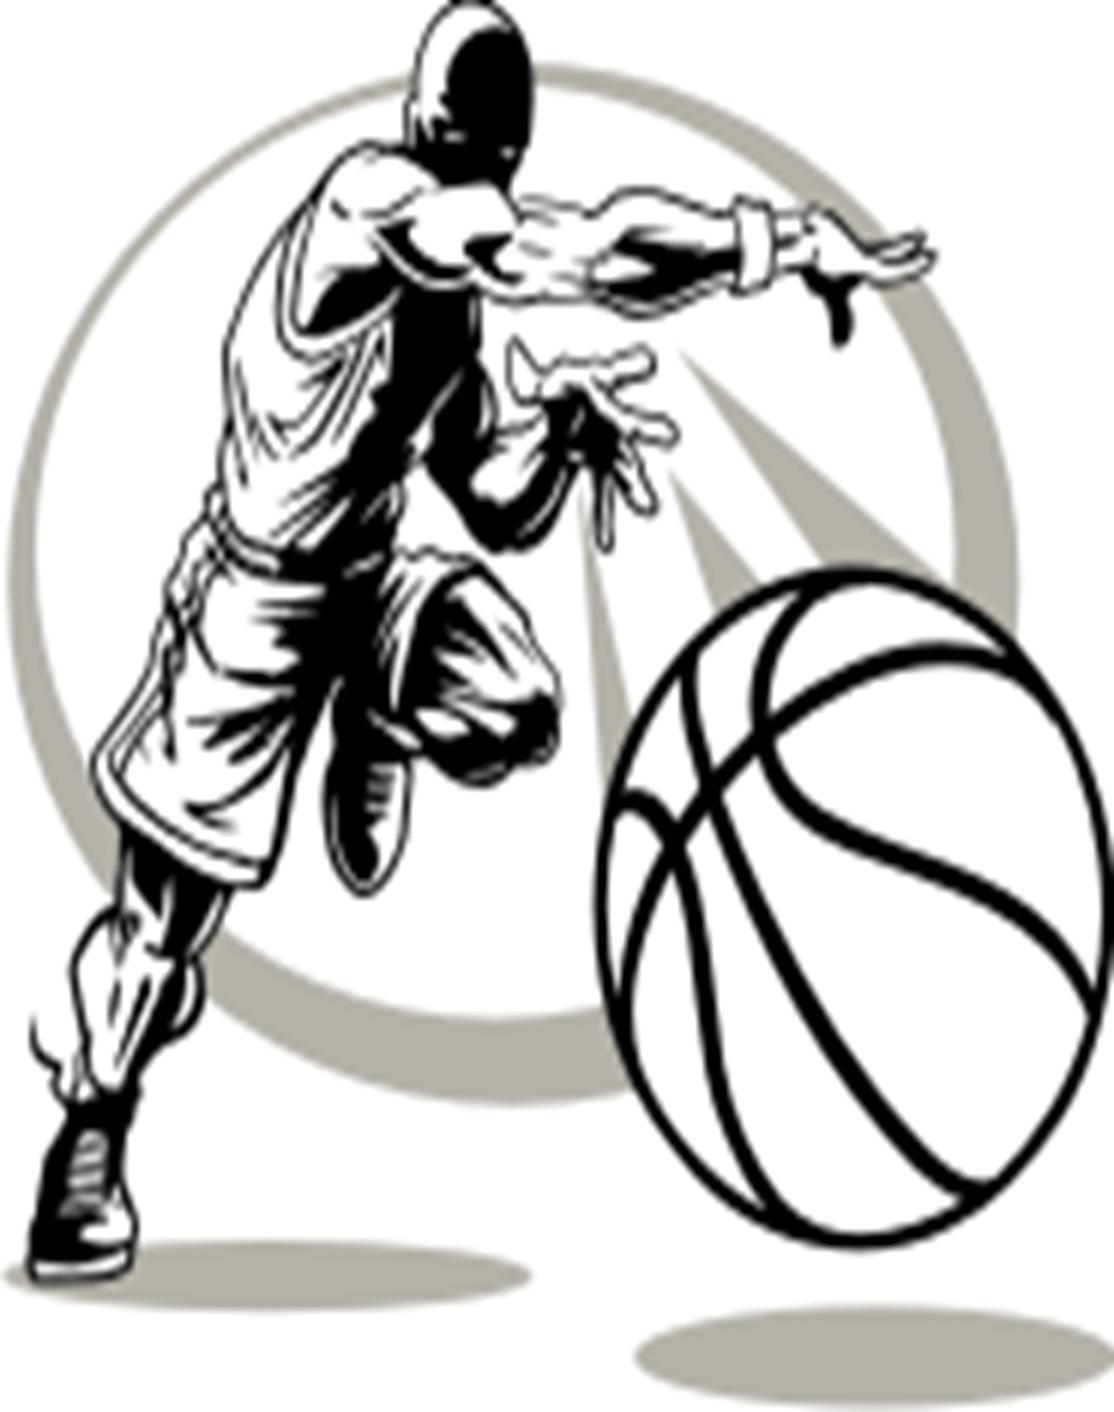 Free Basketball Teamwork Cliparts Download Free Clip Art